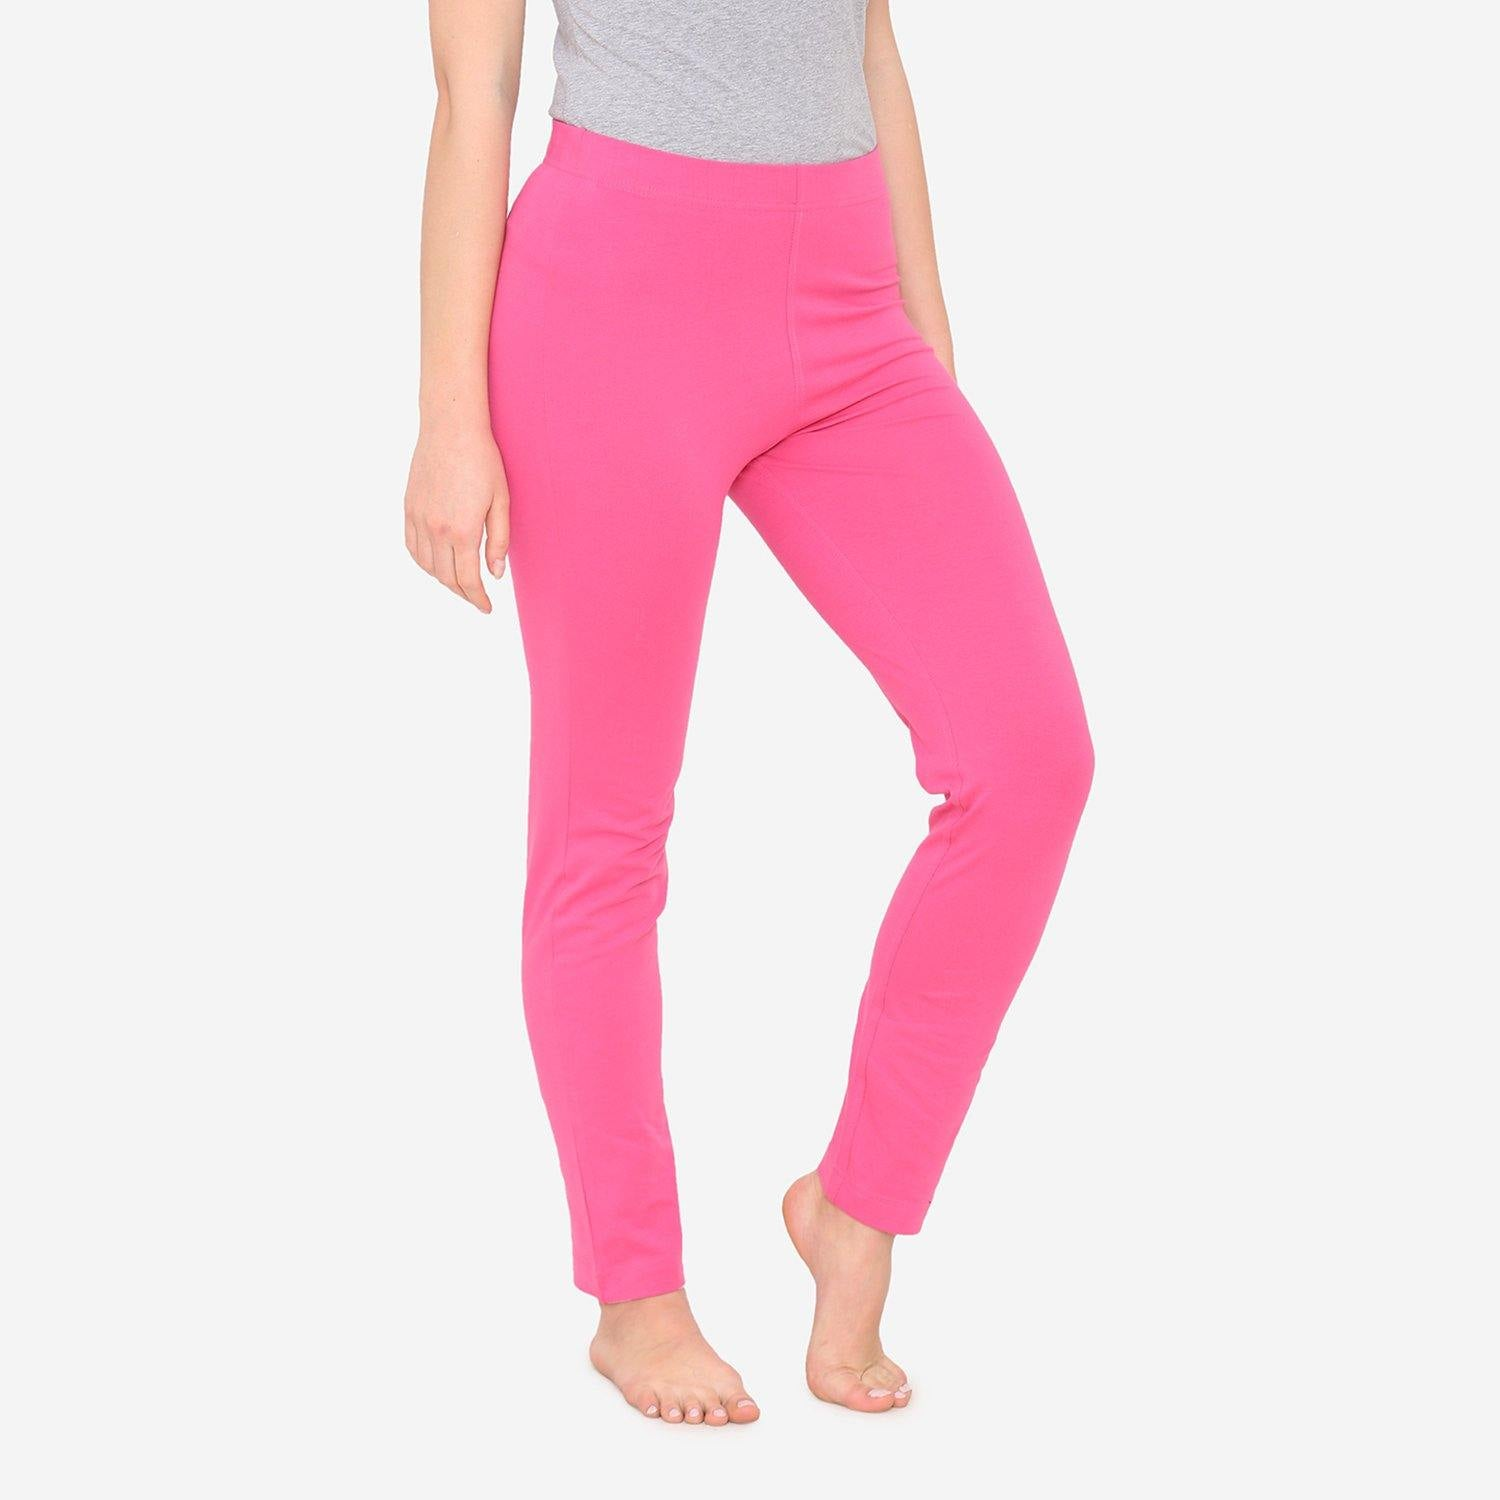 Women's Comfy Classy Plain Lower For Summer - Fuchsia